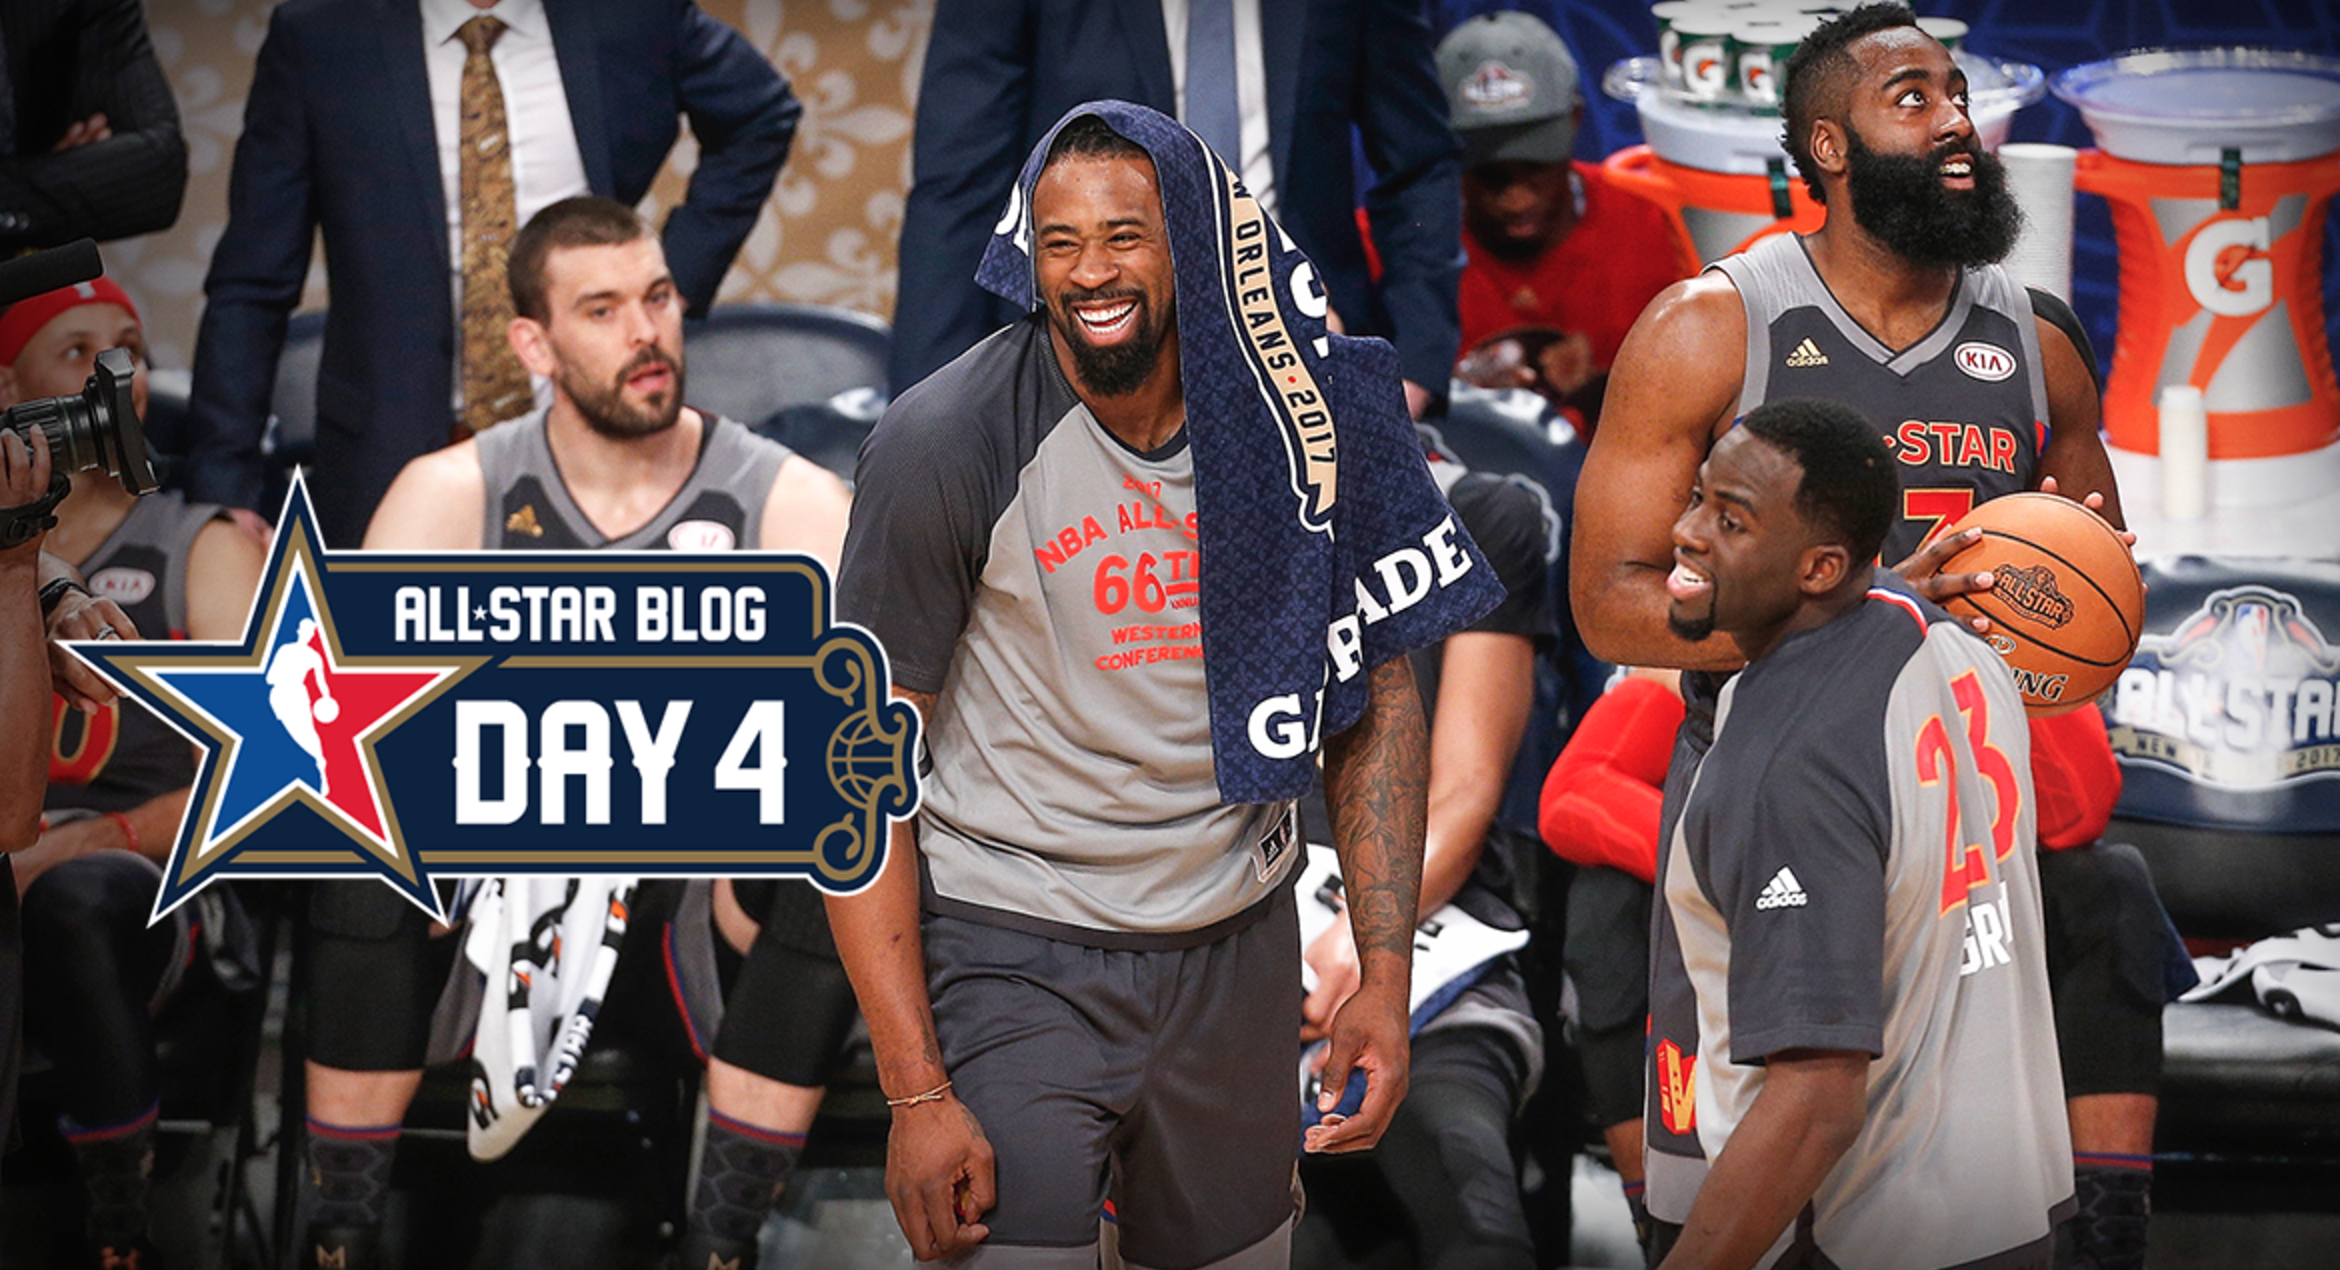 Running 2016-17 NBA All-Star Blog Day 4